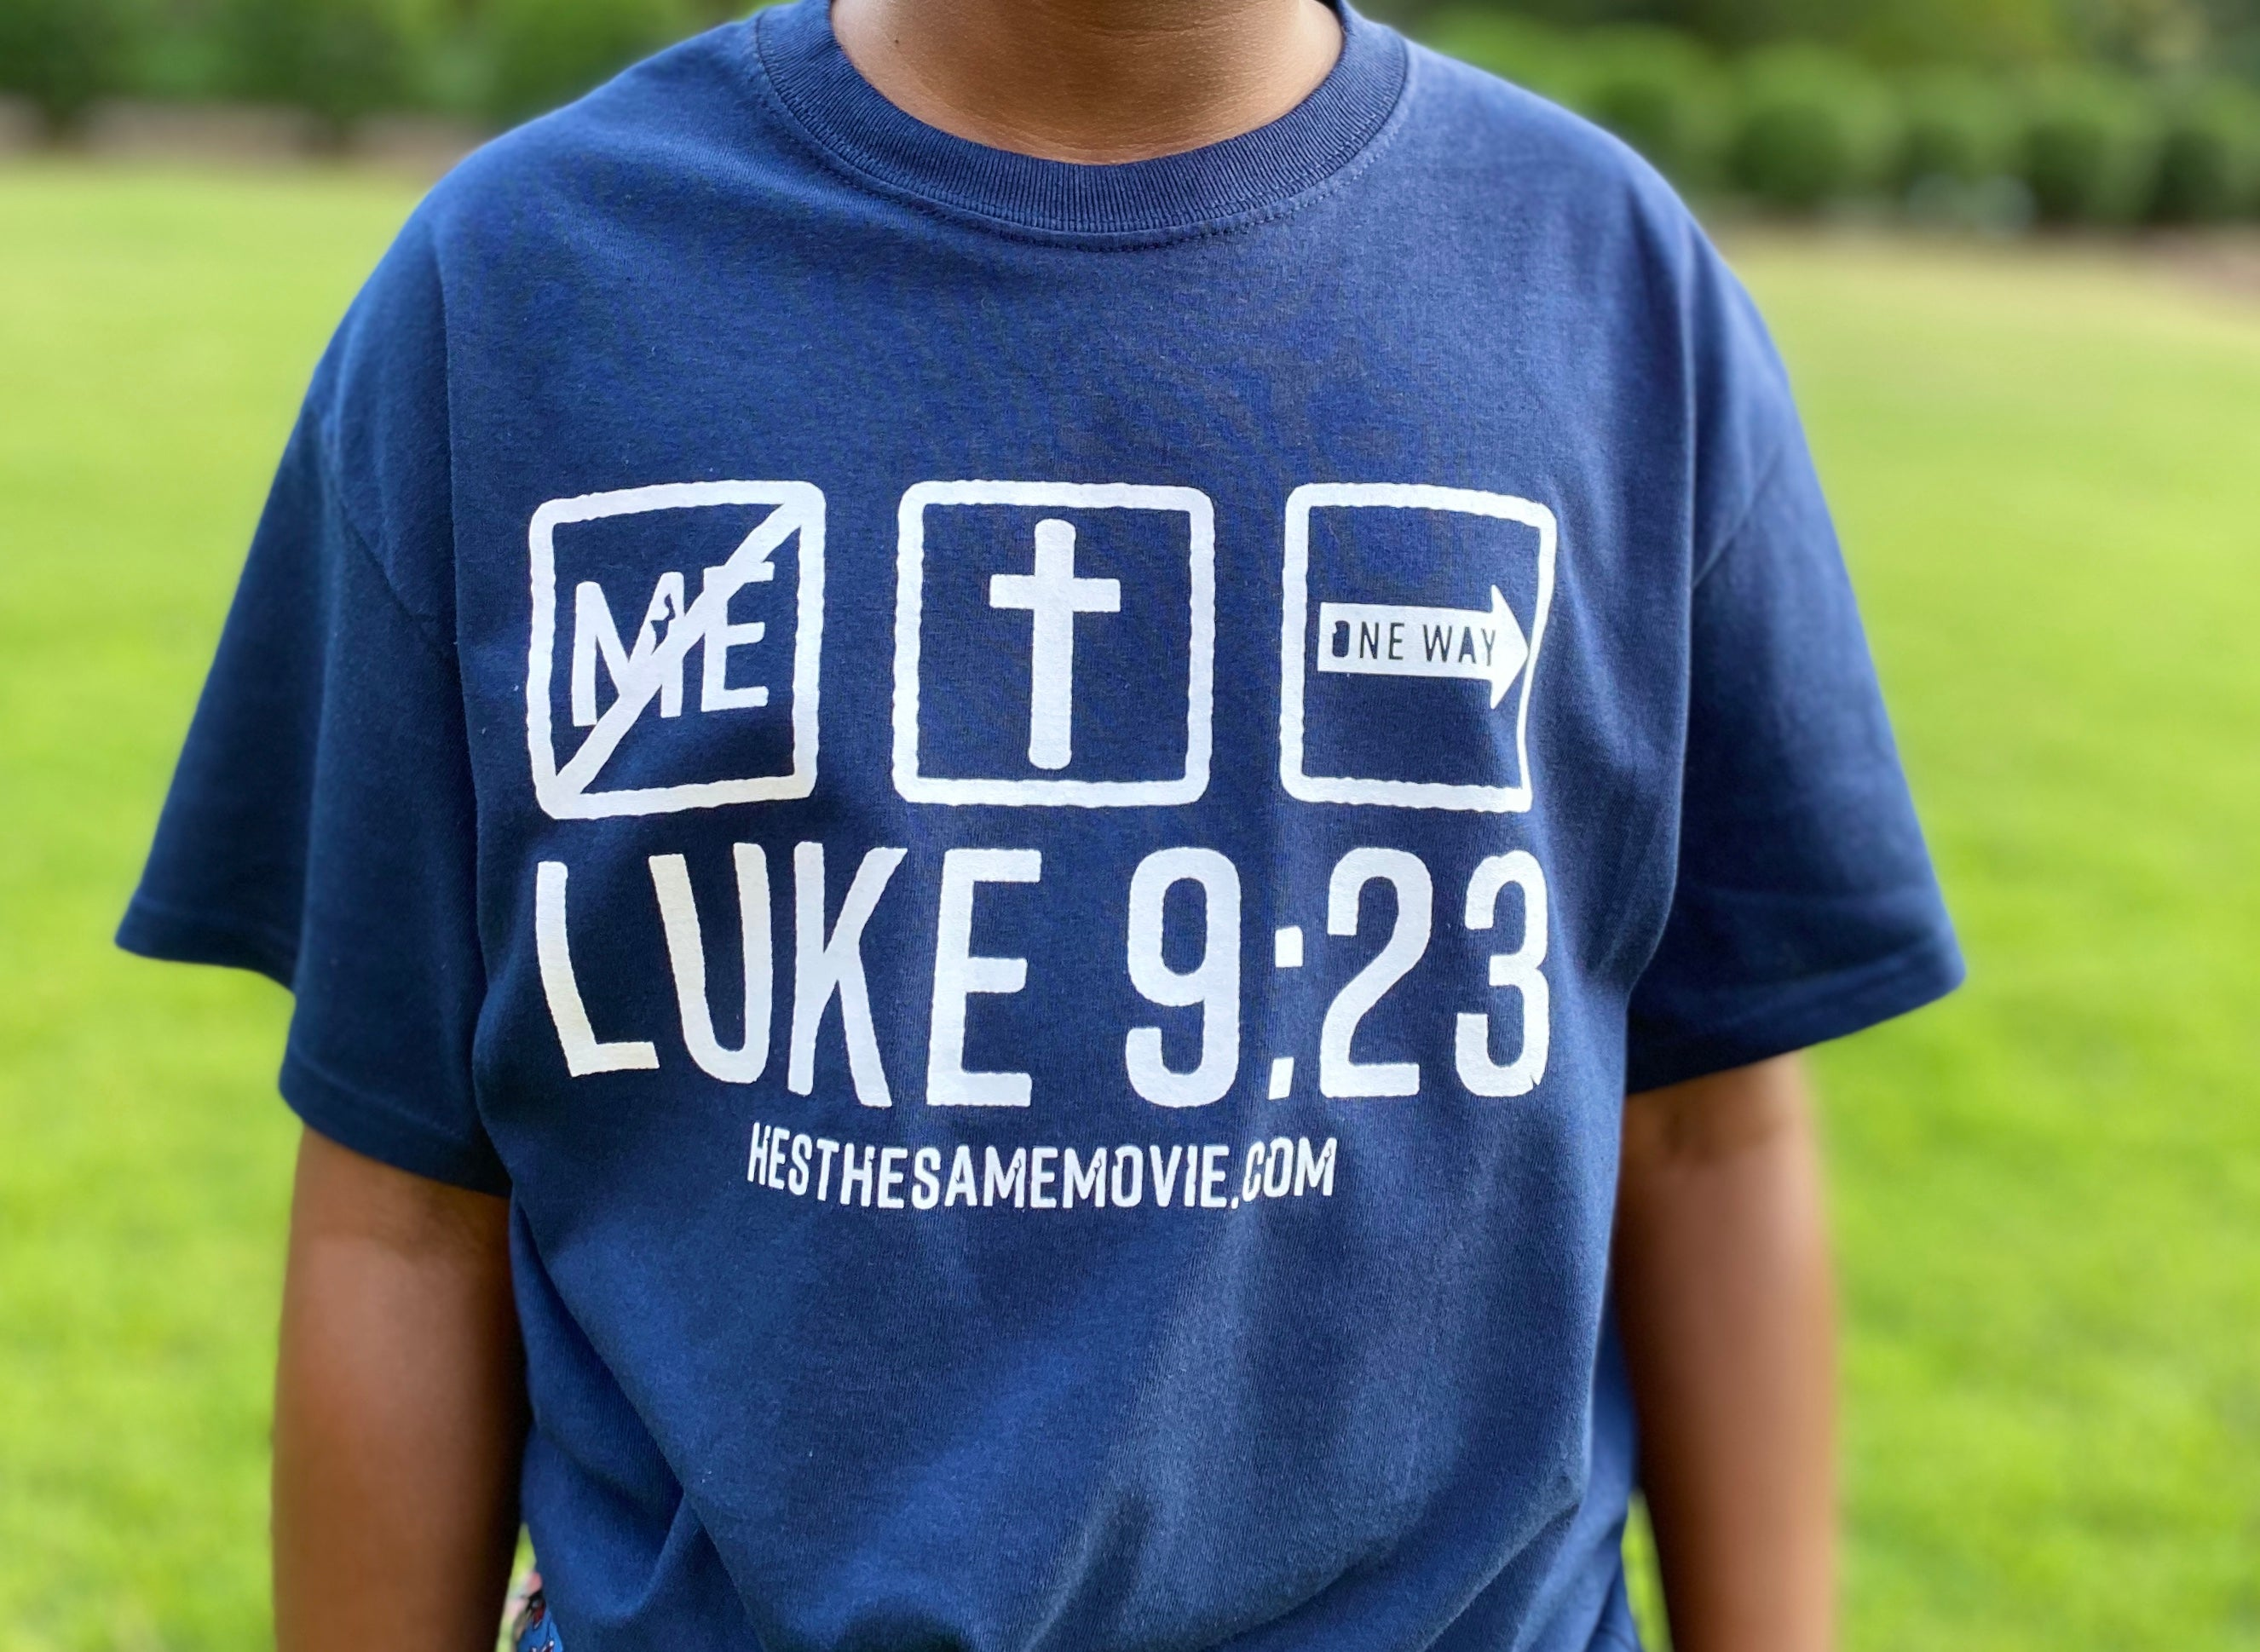 Luke 9:23 Blue Shirt